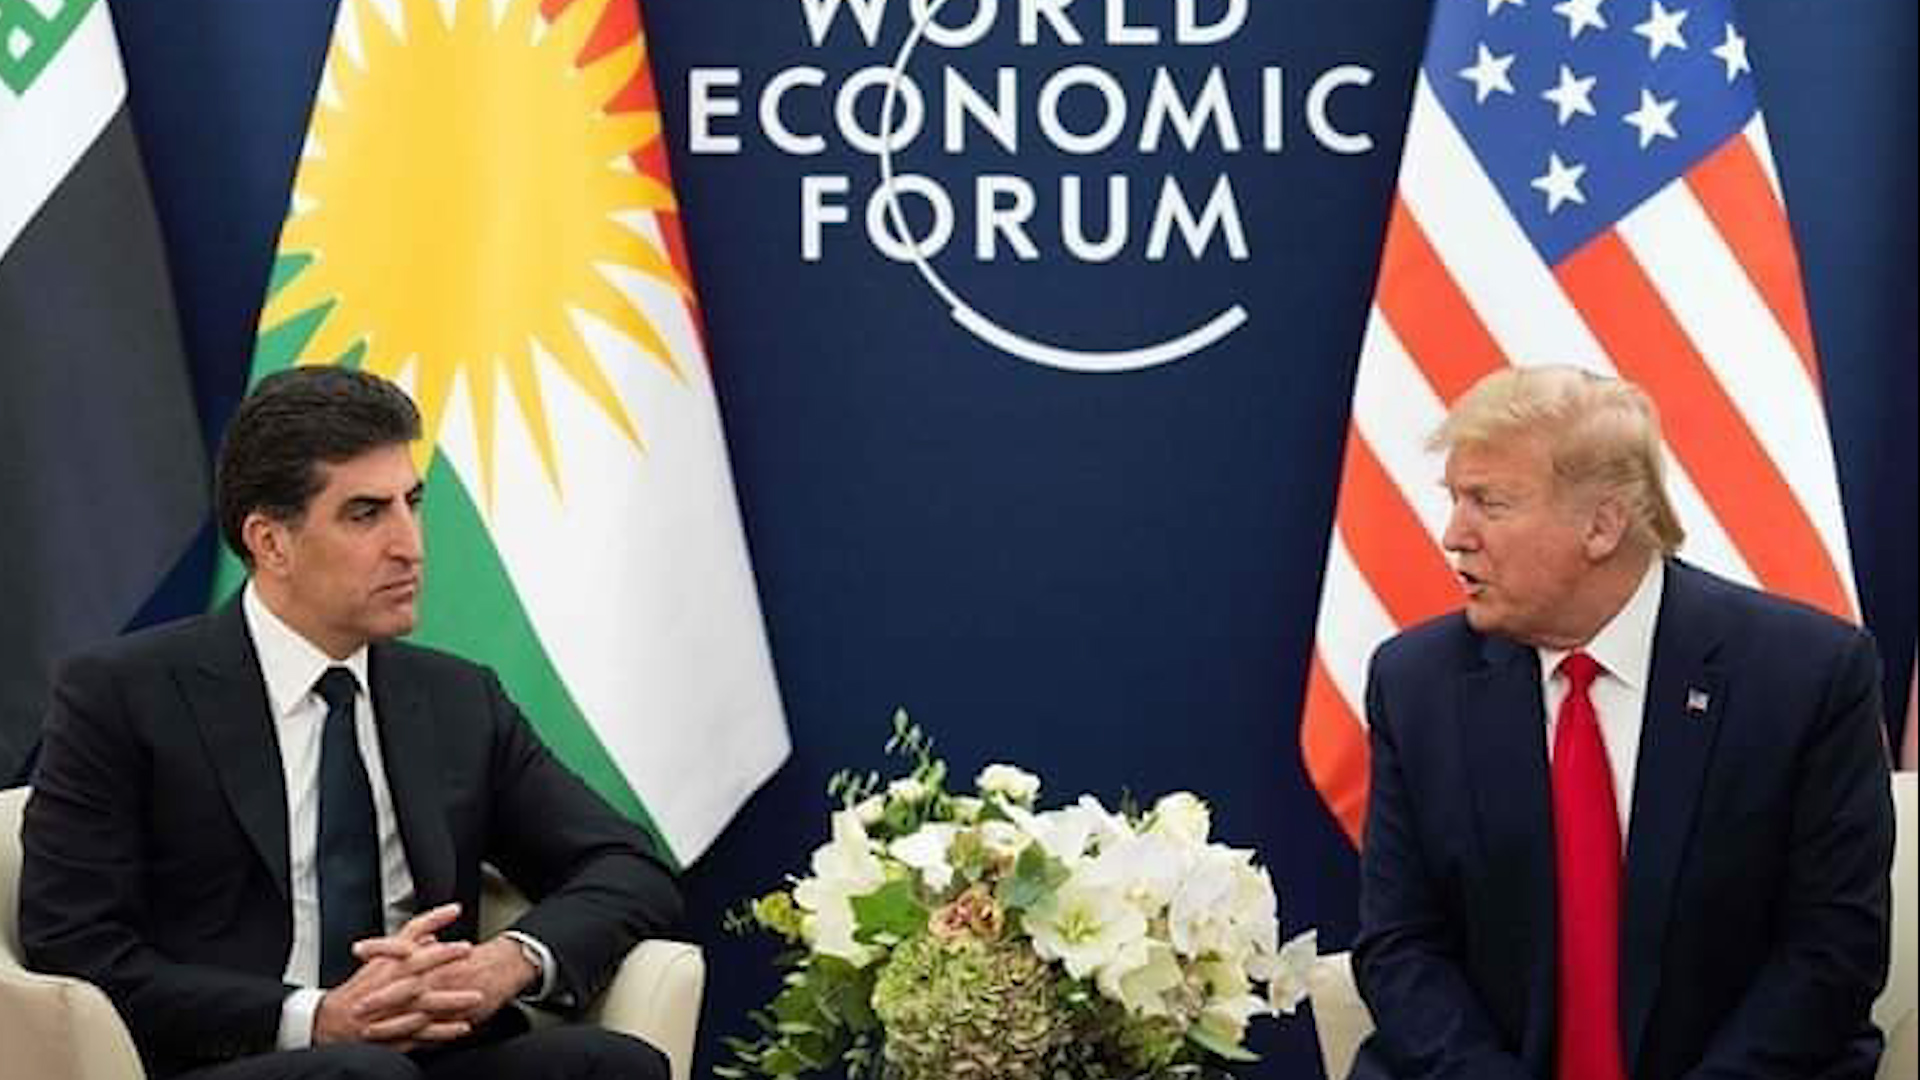 Photo of Donald Trump bi serokê Başûrê Kurdistanê û serkwezîrê Iraqê re civiya